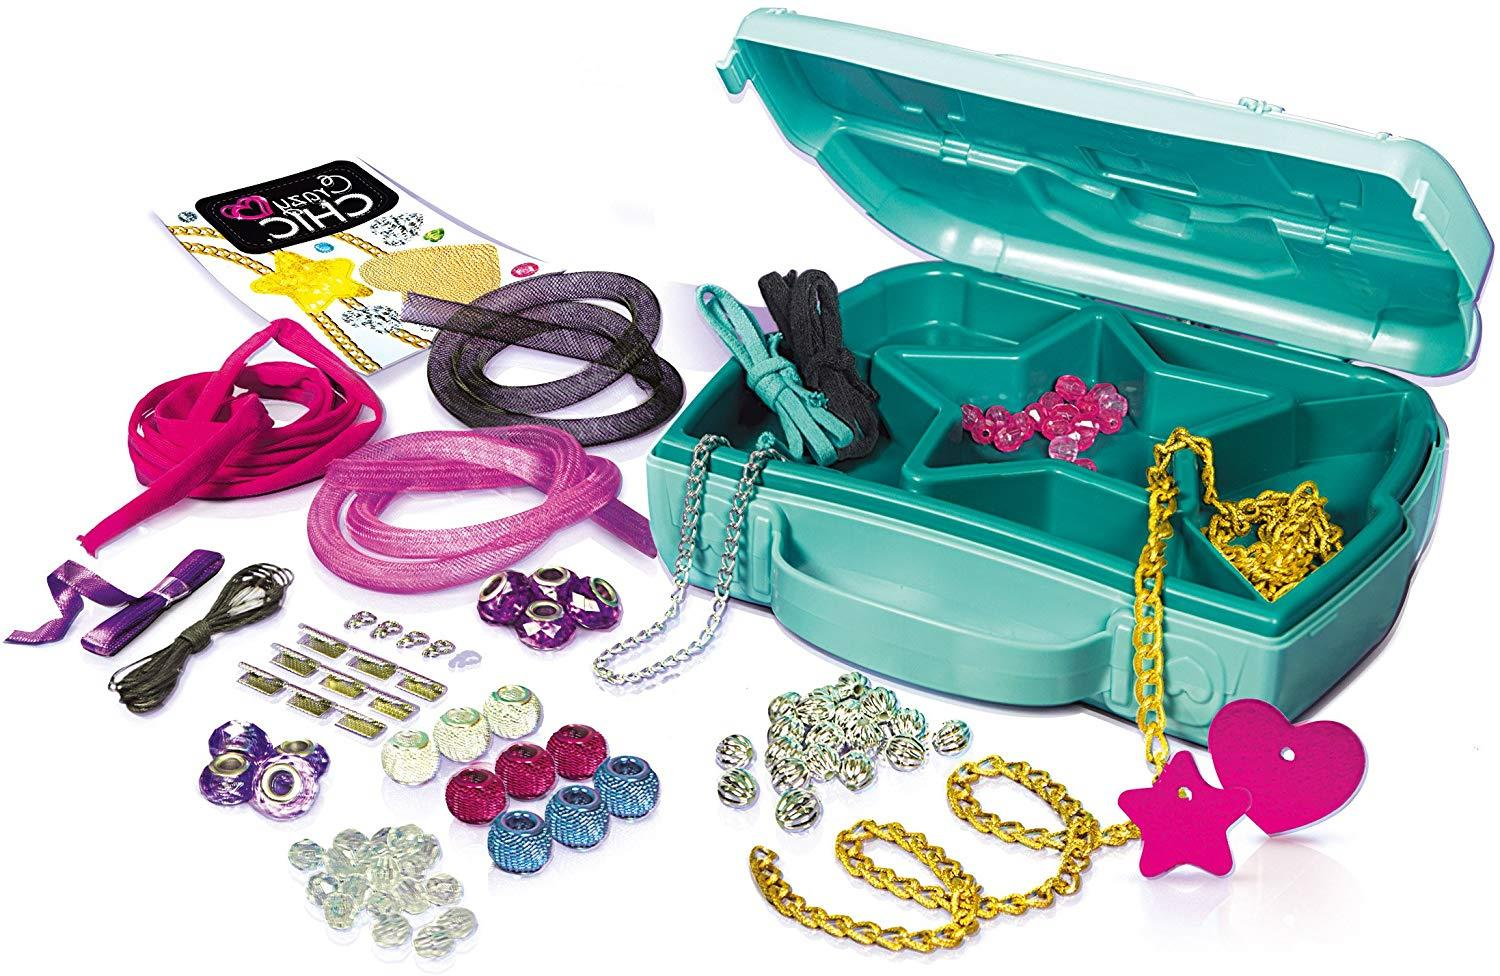 Clementoni CRAZY CHIC The JEWELLERY WORKSHOP Make Your Jewellery /& Bag Case